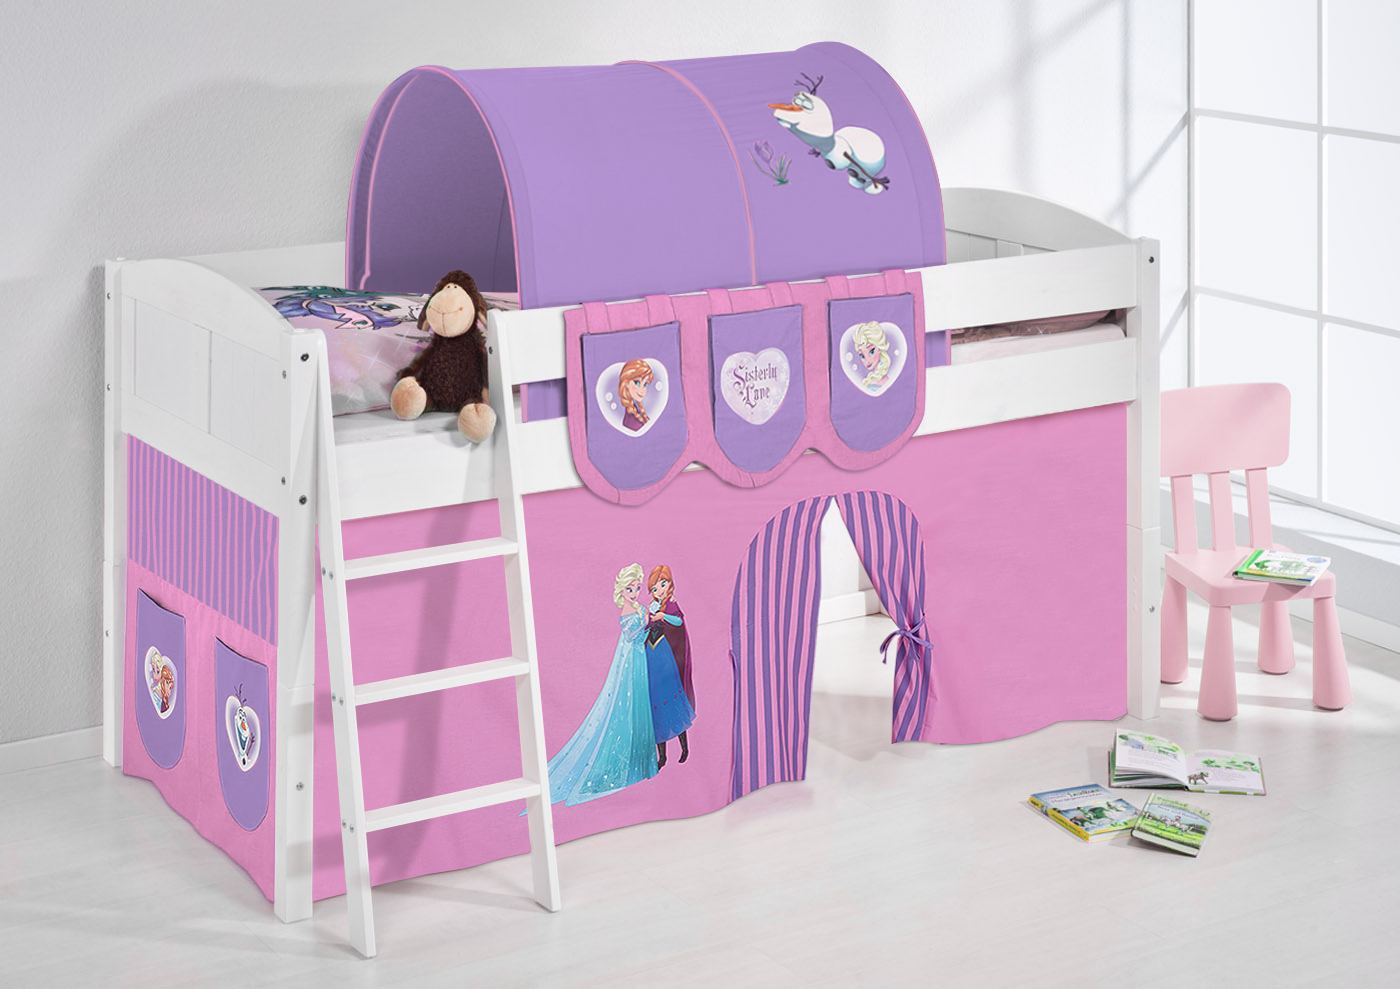 jouer lit aire de jeux mezzanine d 39 enfant enfants convertible simple 4106 ebay. Black Bedroom Furniture Sets. Home Design Ideas